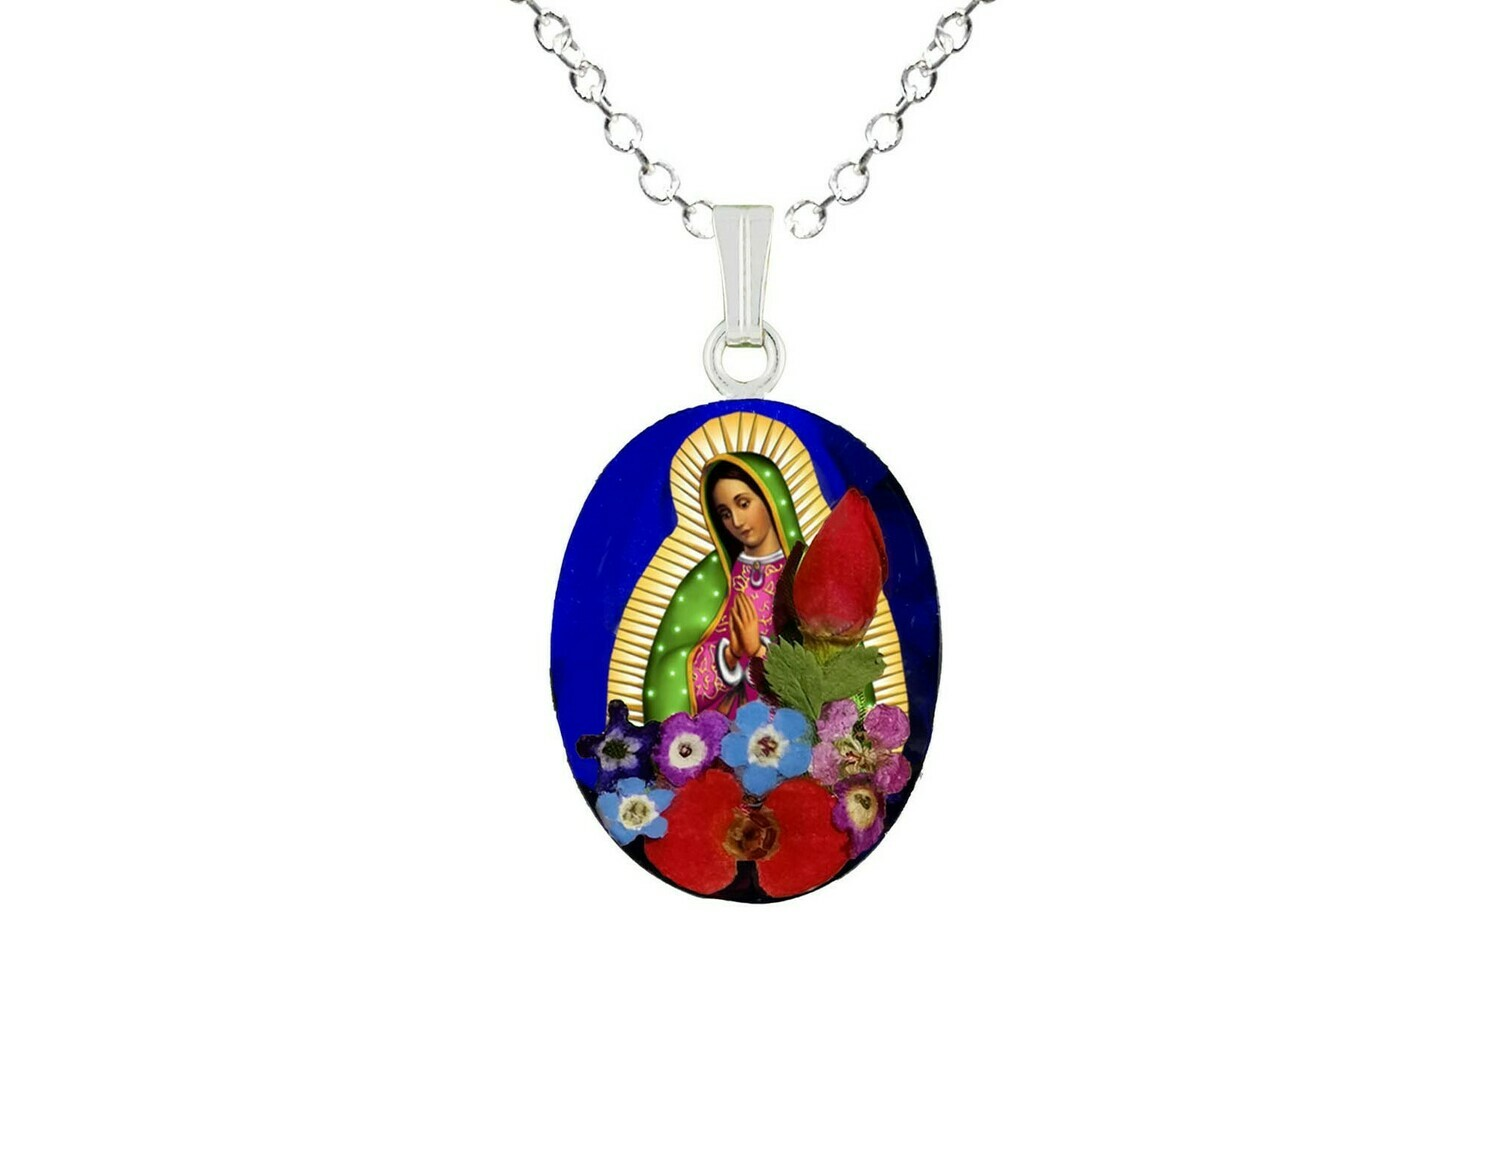 Guadalupe Virgen, Medium Oval Pendant, Navy Blue Background